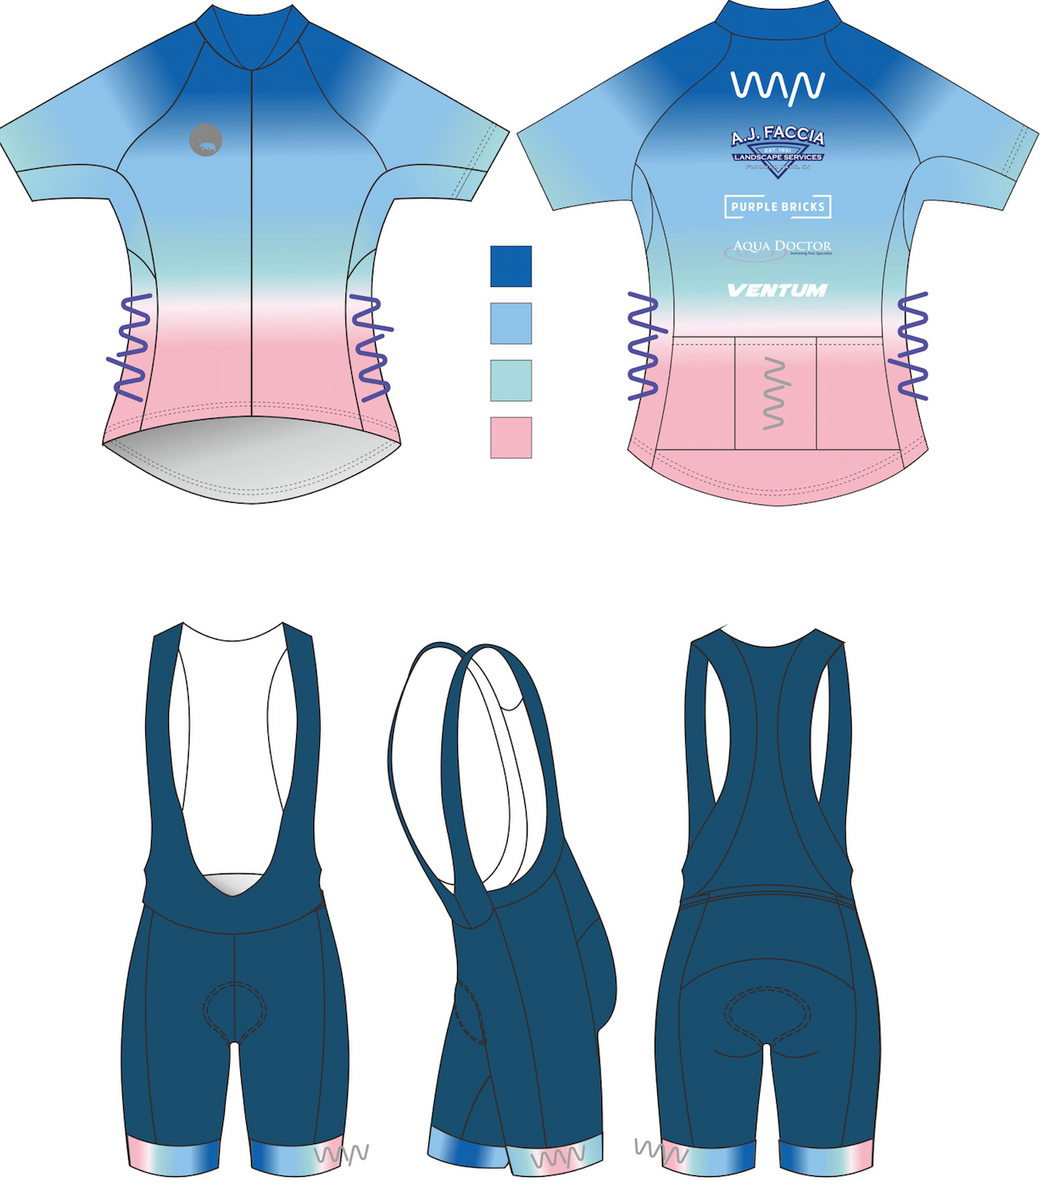 WYN x BERMUDA premium cycling kit (jersey + bib shorts)- women's